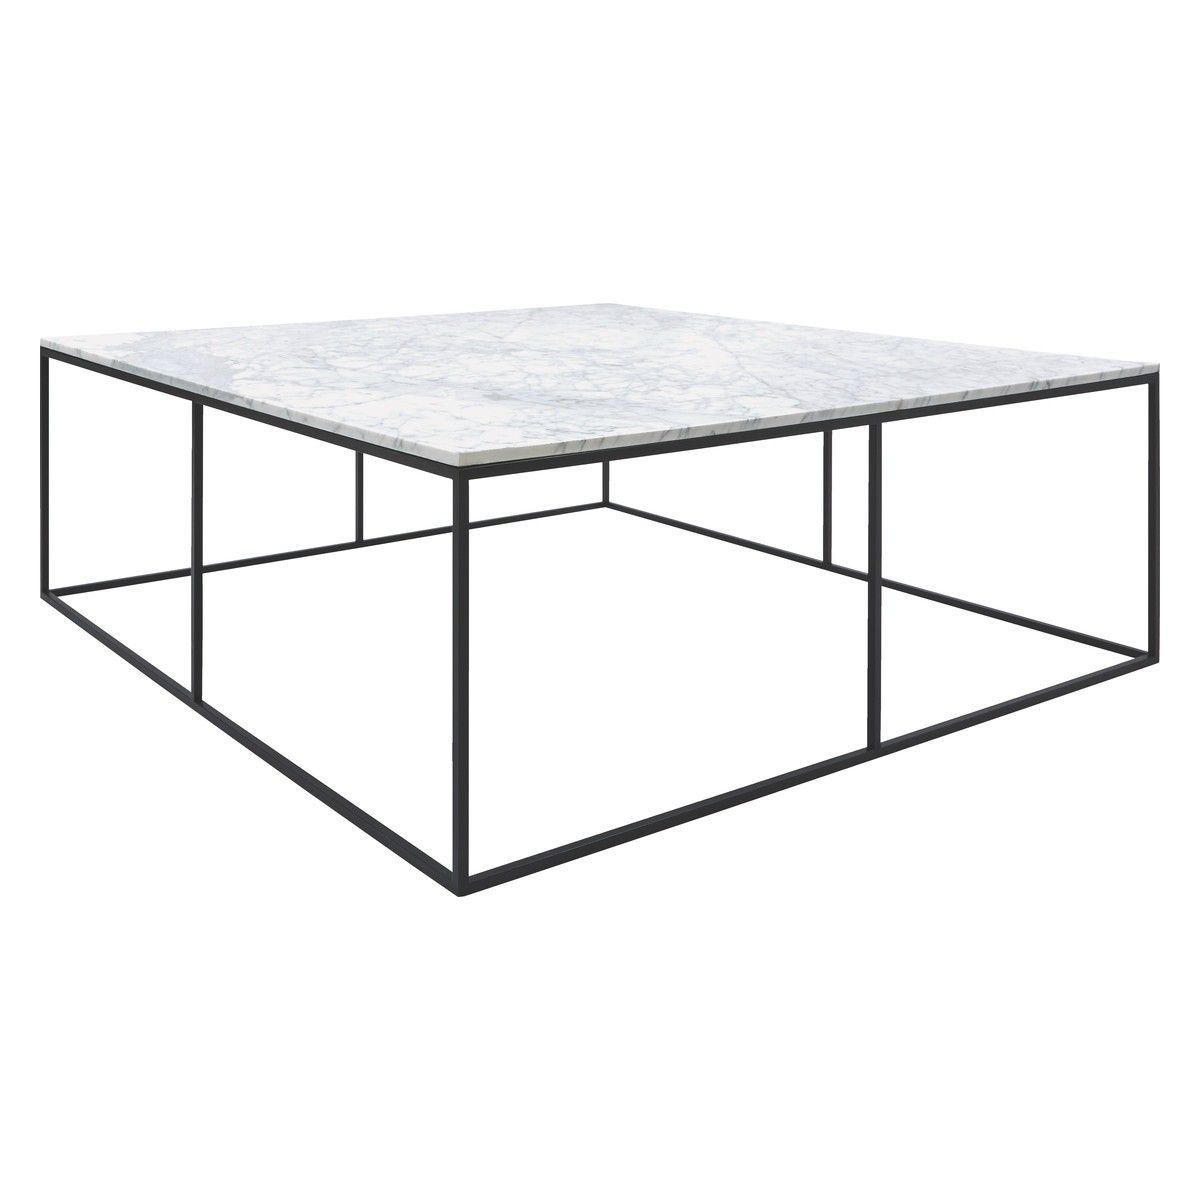 Nestor Large Square Marble Coffee Table Coffee Table Square Reclaimed Wood Coffee Table Marble Coffee Table [ 1200 x 1200 Pixel ]